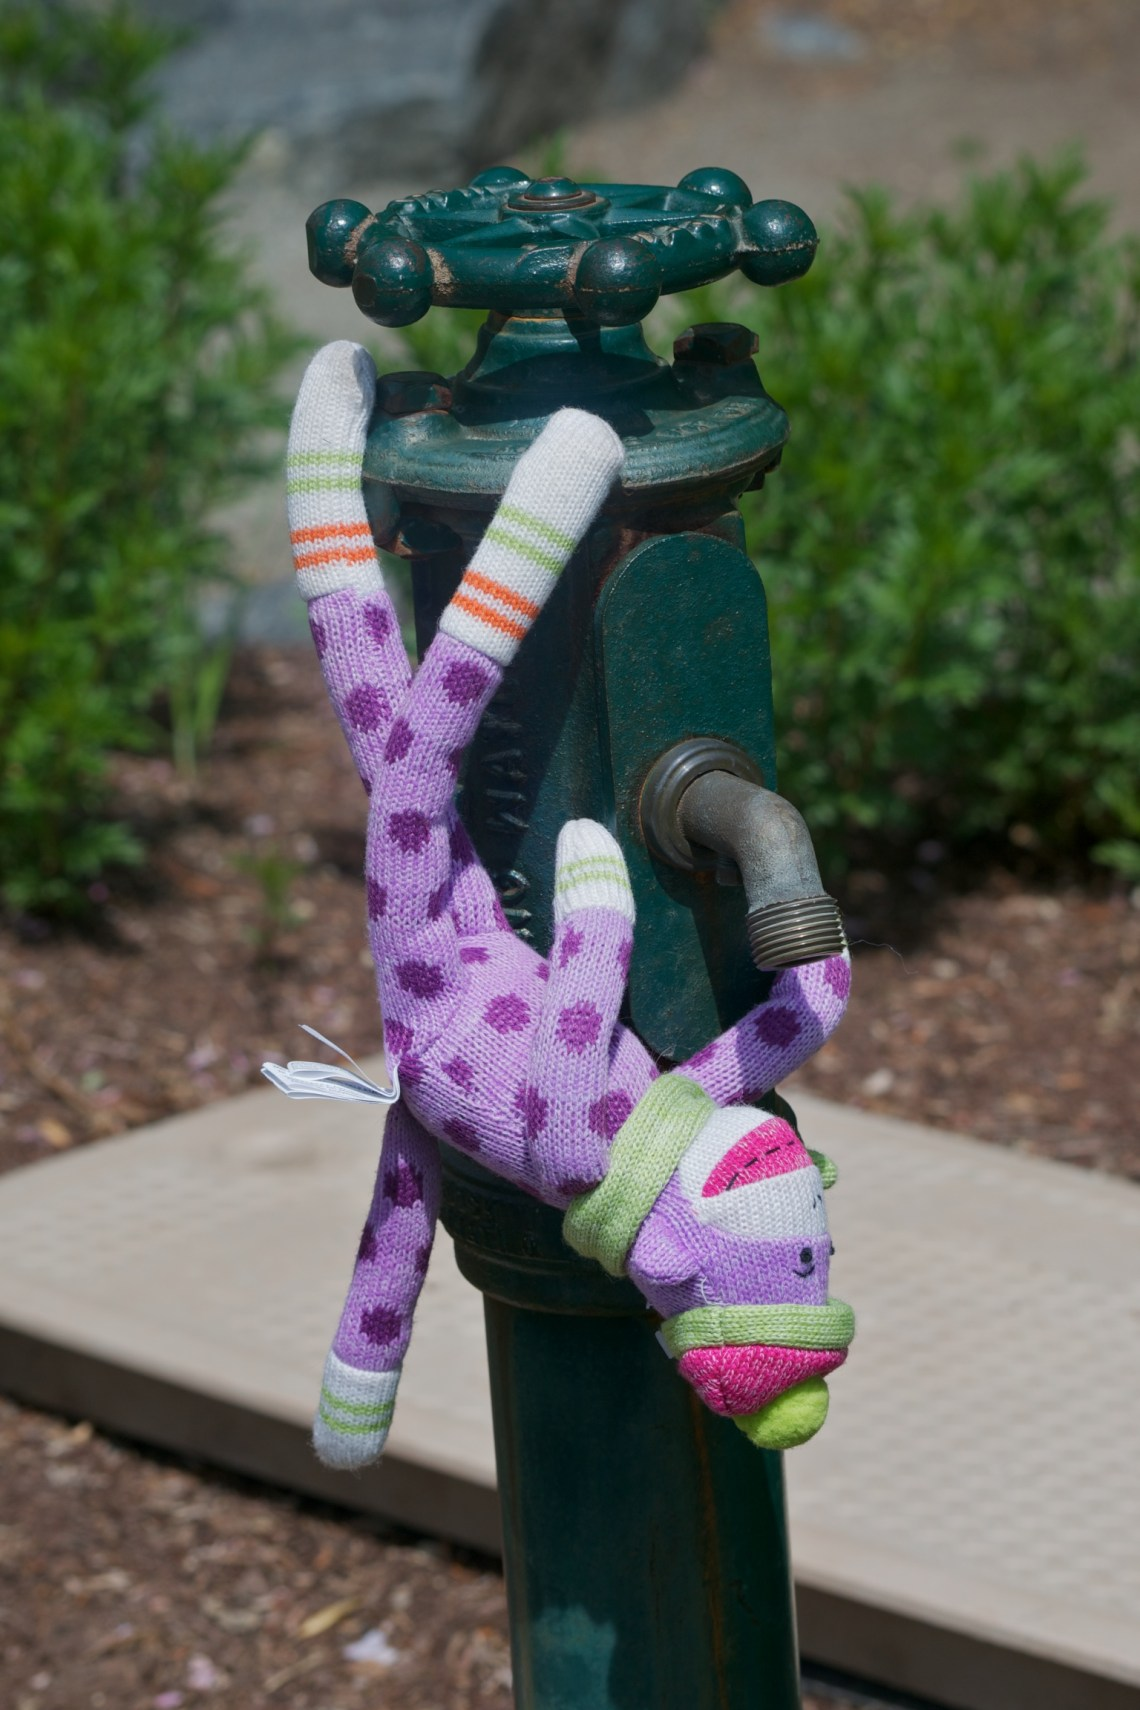 Sock Monkey Drinking from a Spigot